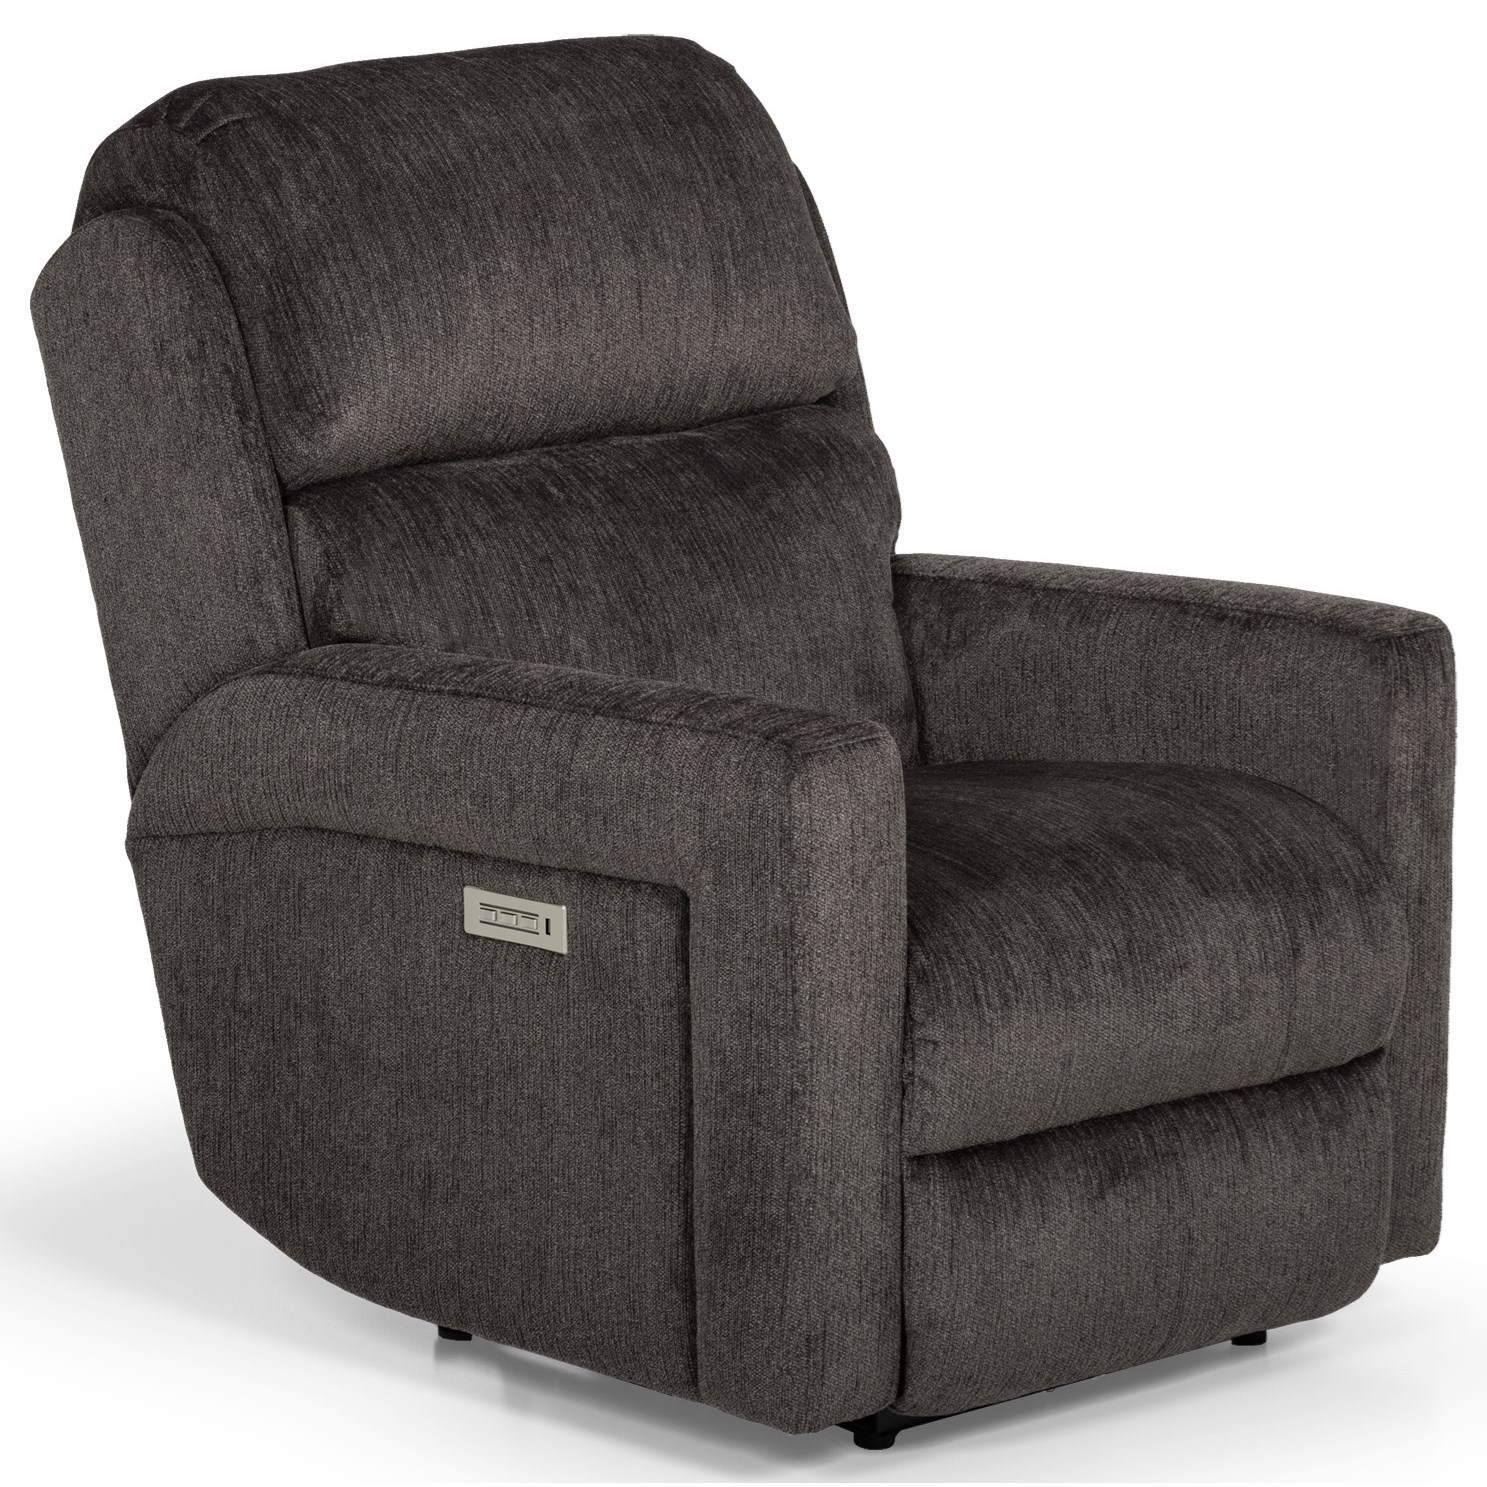 945 Gliding Reclining Chair by Sunset Home at Sadler's Home Furnishings